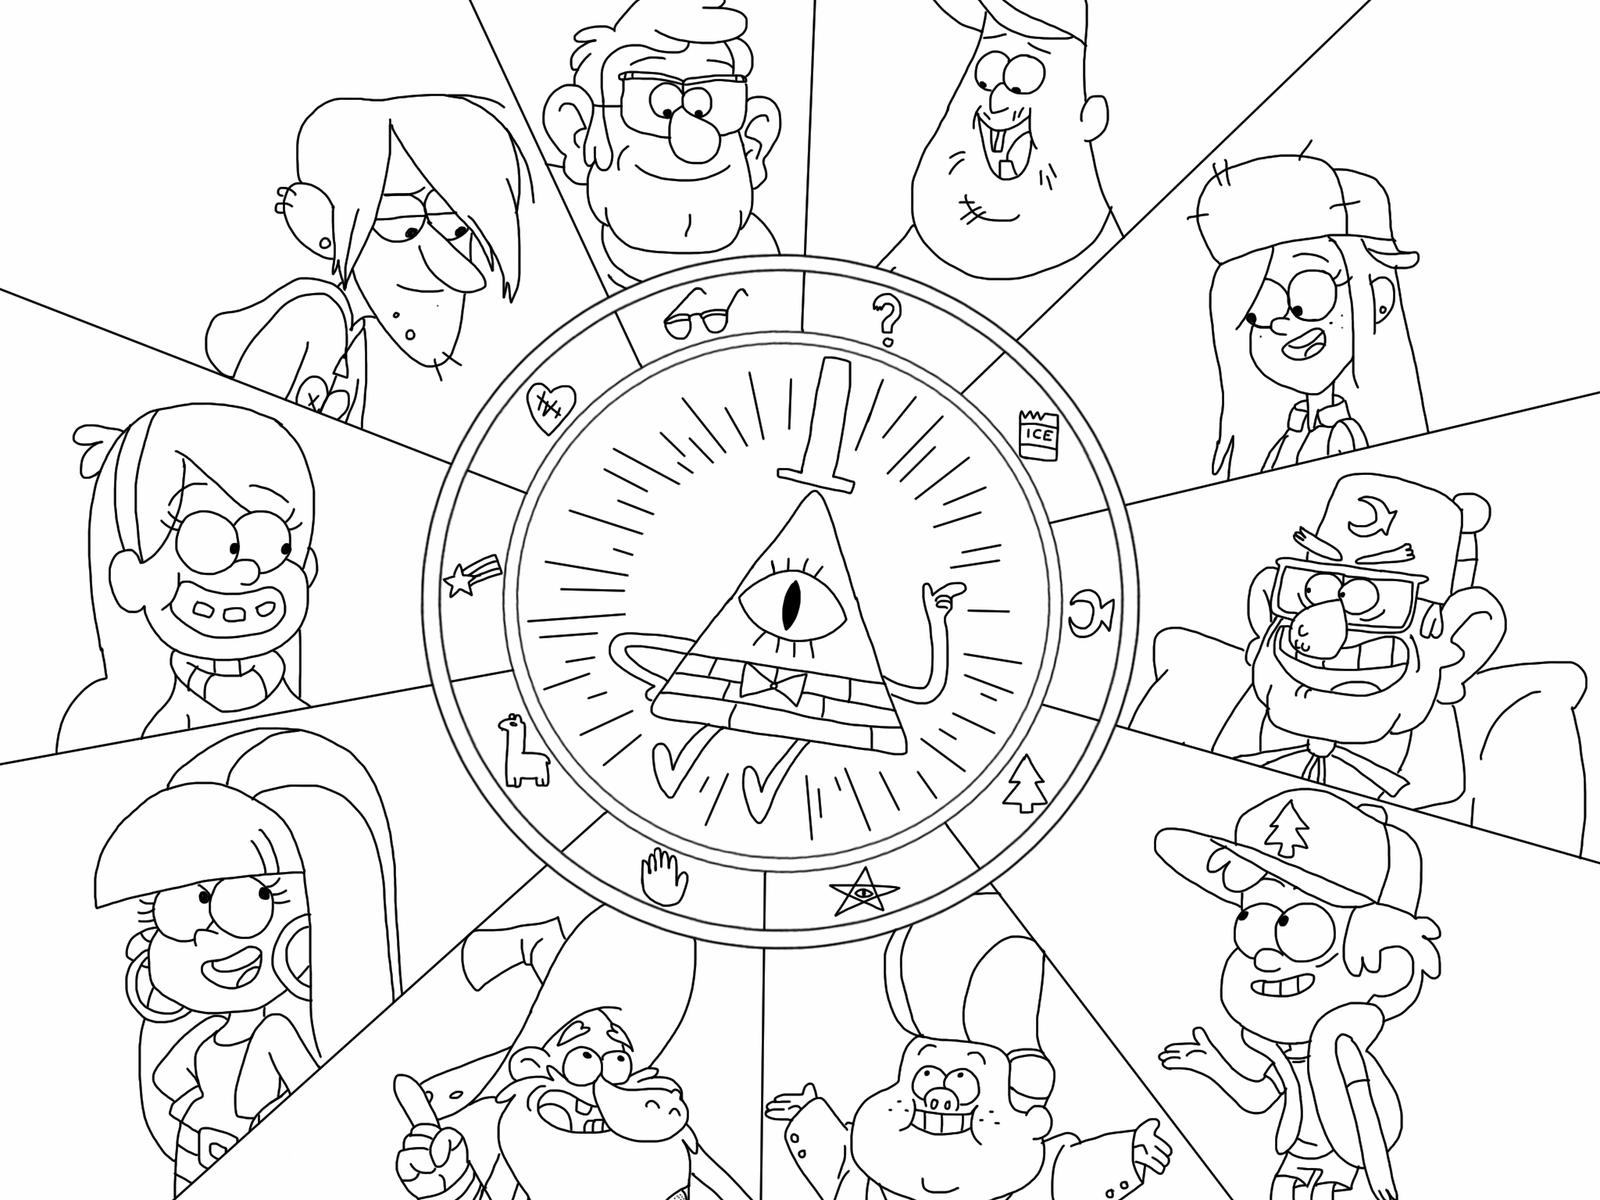 Gravity Falls Wheel Character Symbols 519764287 furthermore 235195 Need Help Finding Cylinder 3 A besides Dipper Fanfiction also Mabel Pines Gravity Falls Manga 512695288 in addition 2004 Scion Xb Wiring Diagram. on ford pacifica